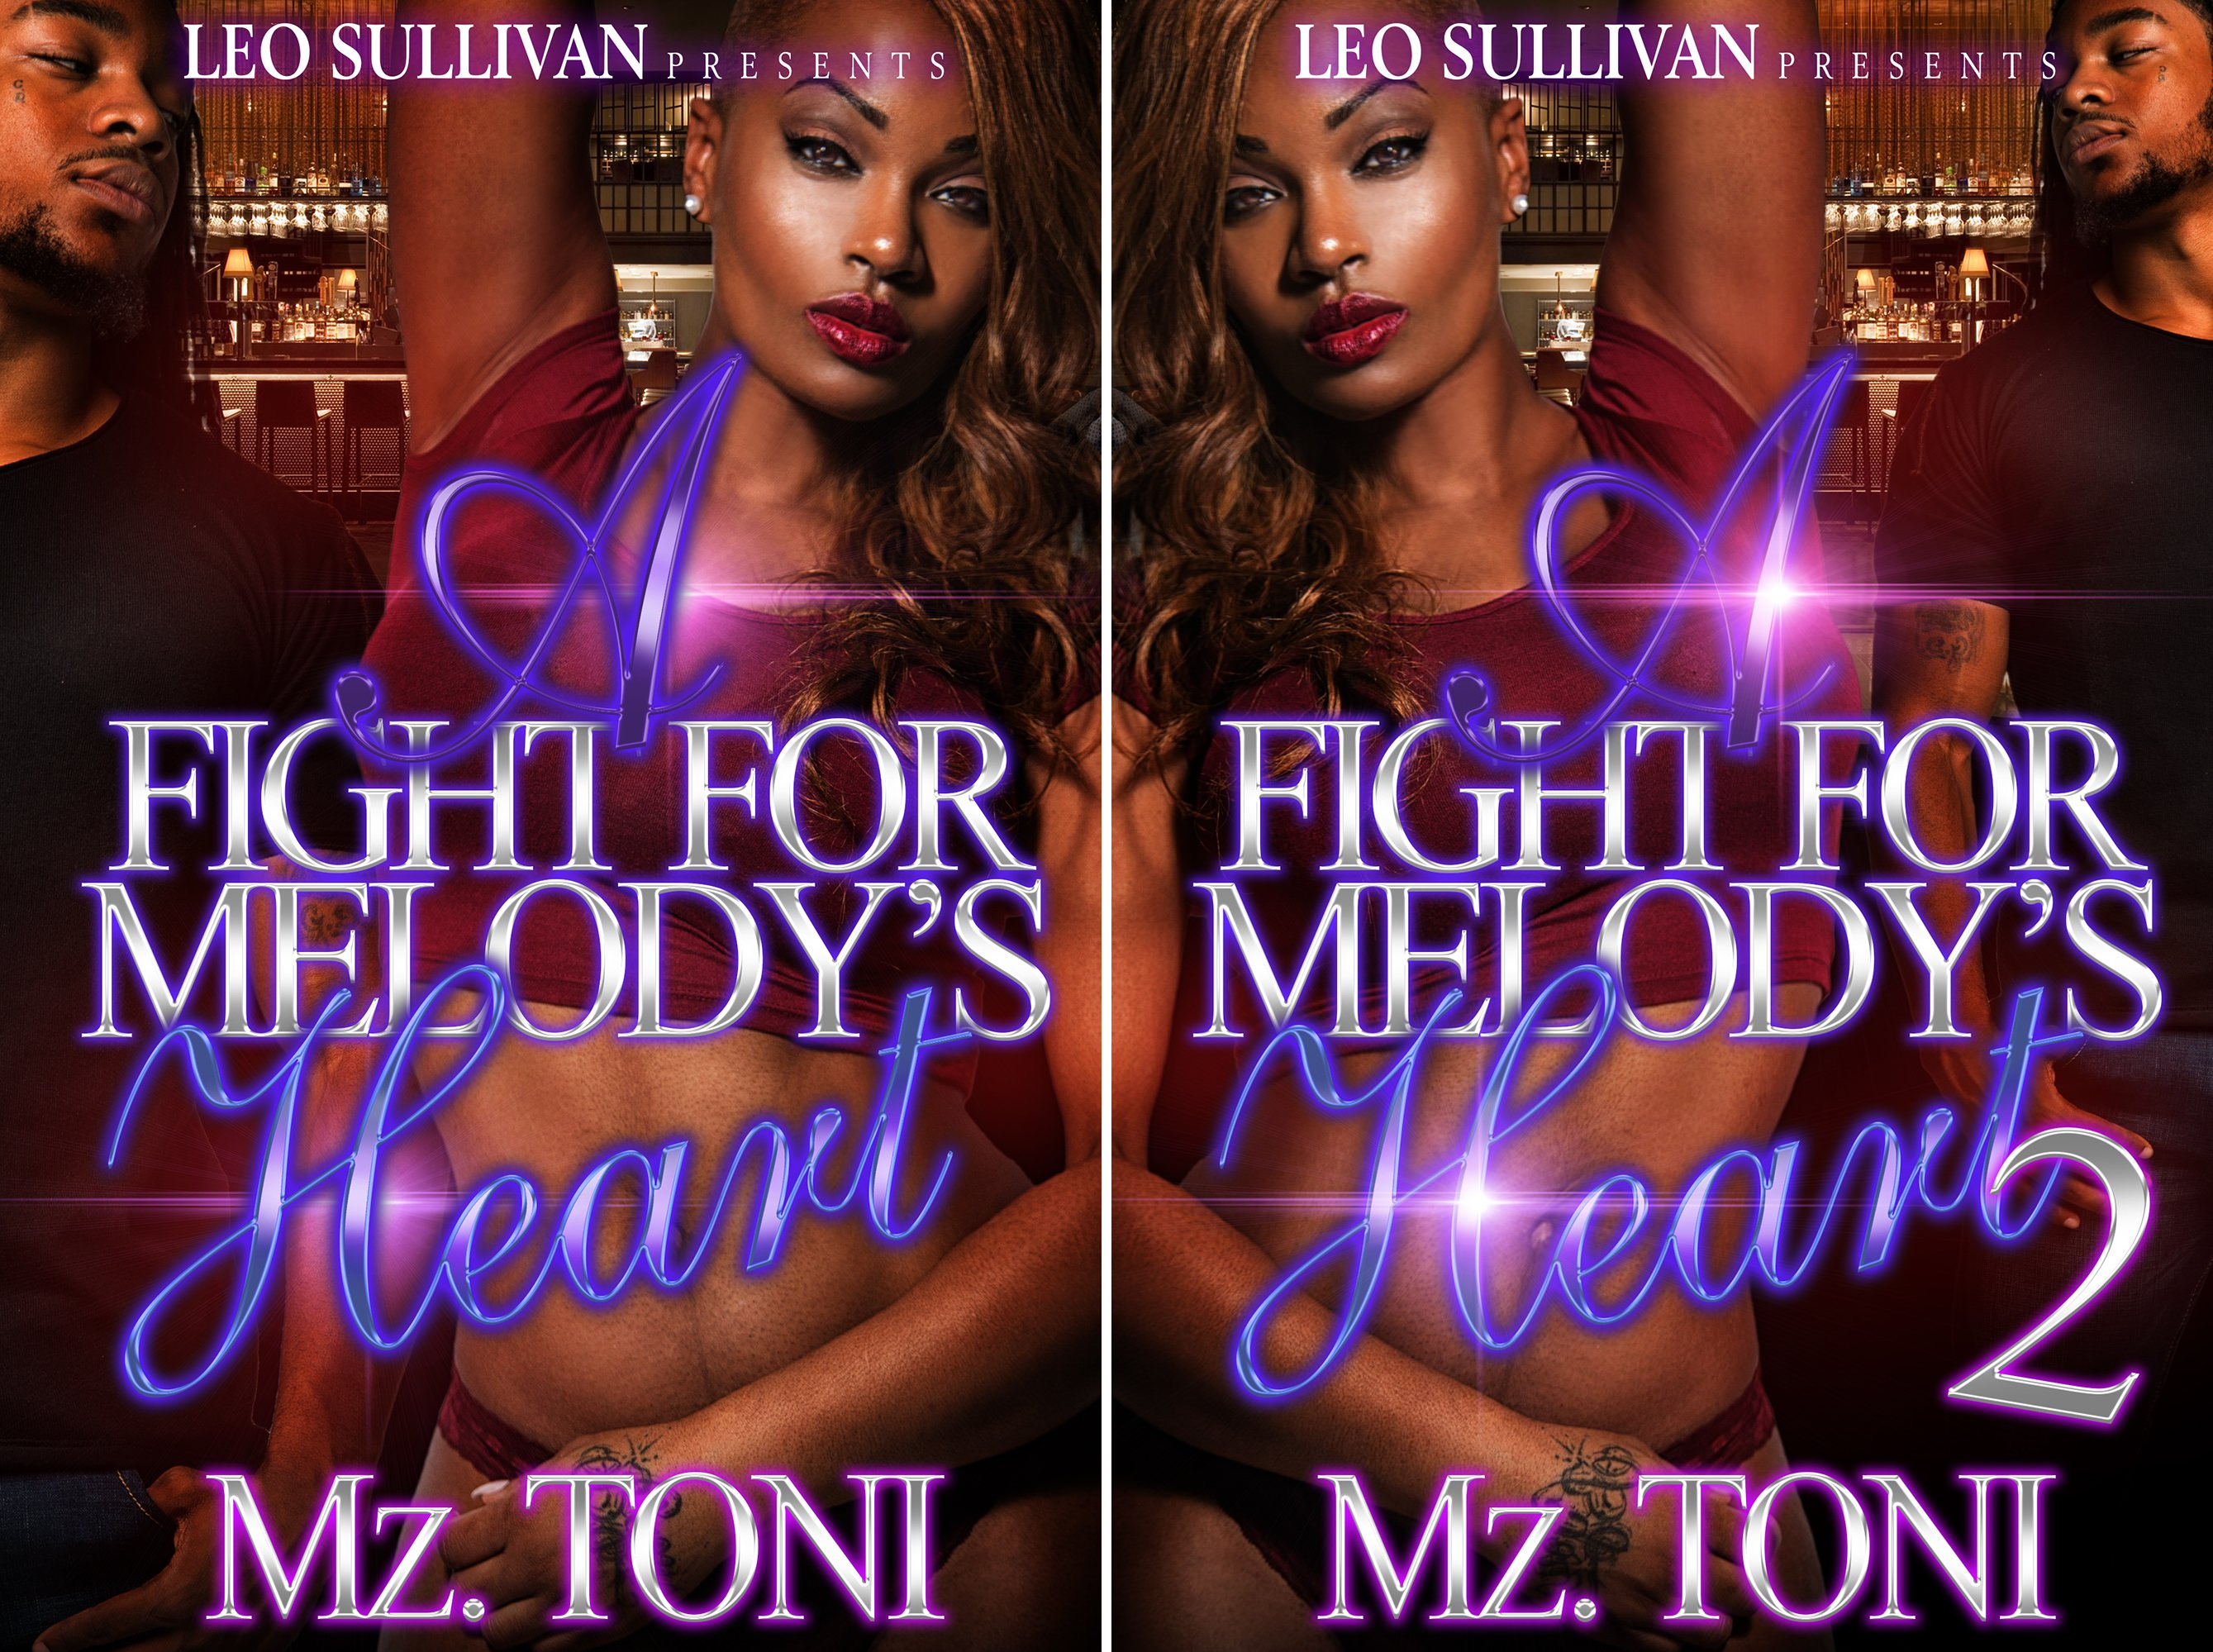 Books : A Fight for Melody's Heart (2 Book Series)